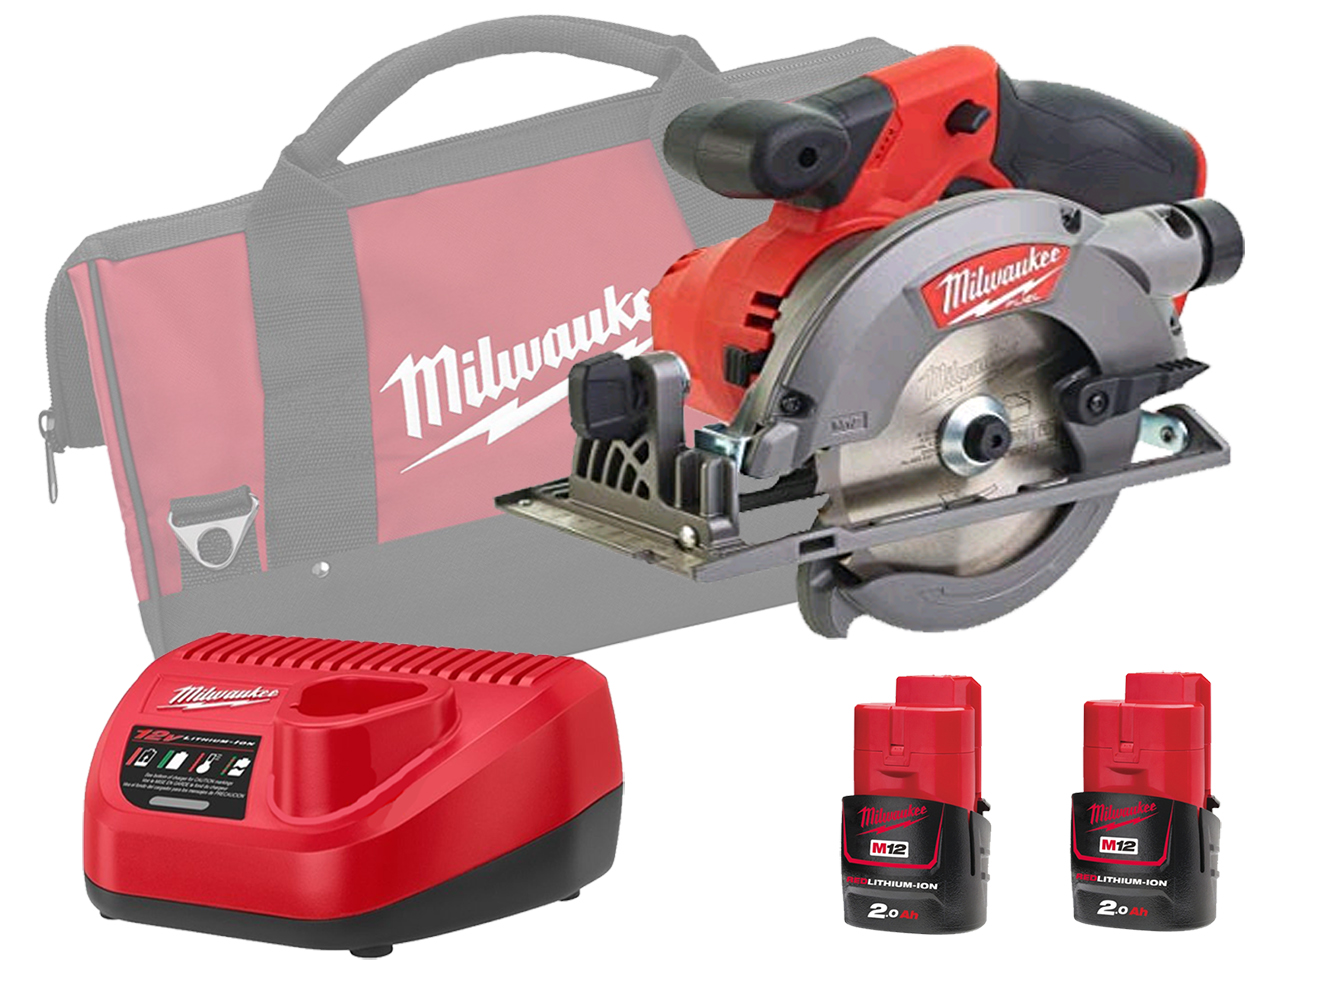 Milwaukee M12CCS44 12V Sub Compact 140mm (44mm) Circular Saw Brushless - 2.0ah Pack